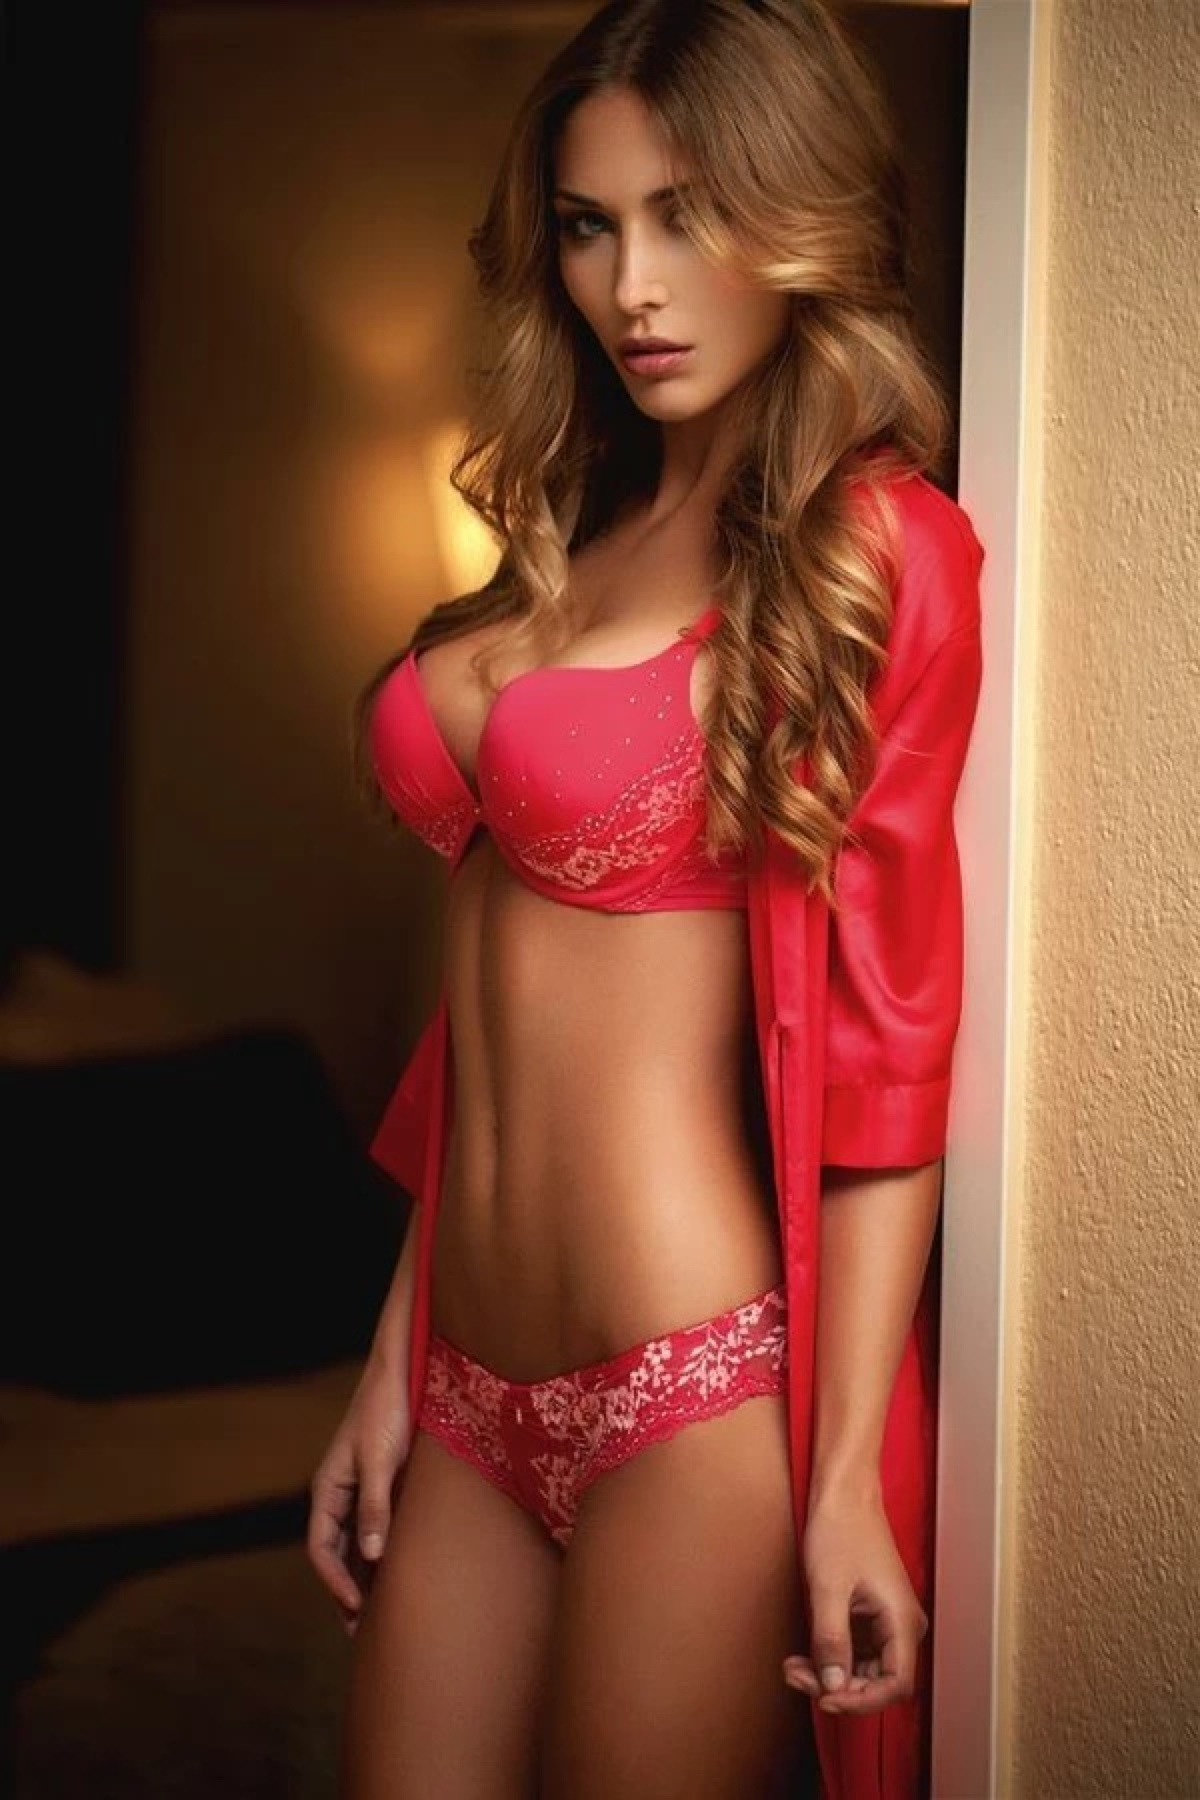 sexy woman lingerie fashion glamour pretty girl model erotic seduction pantie brassiere underwear beautiful